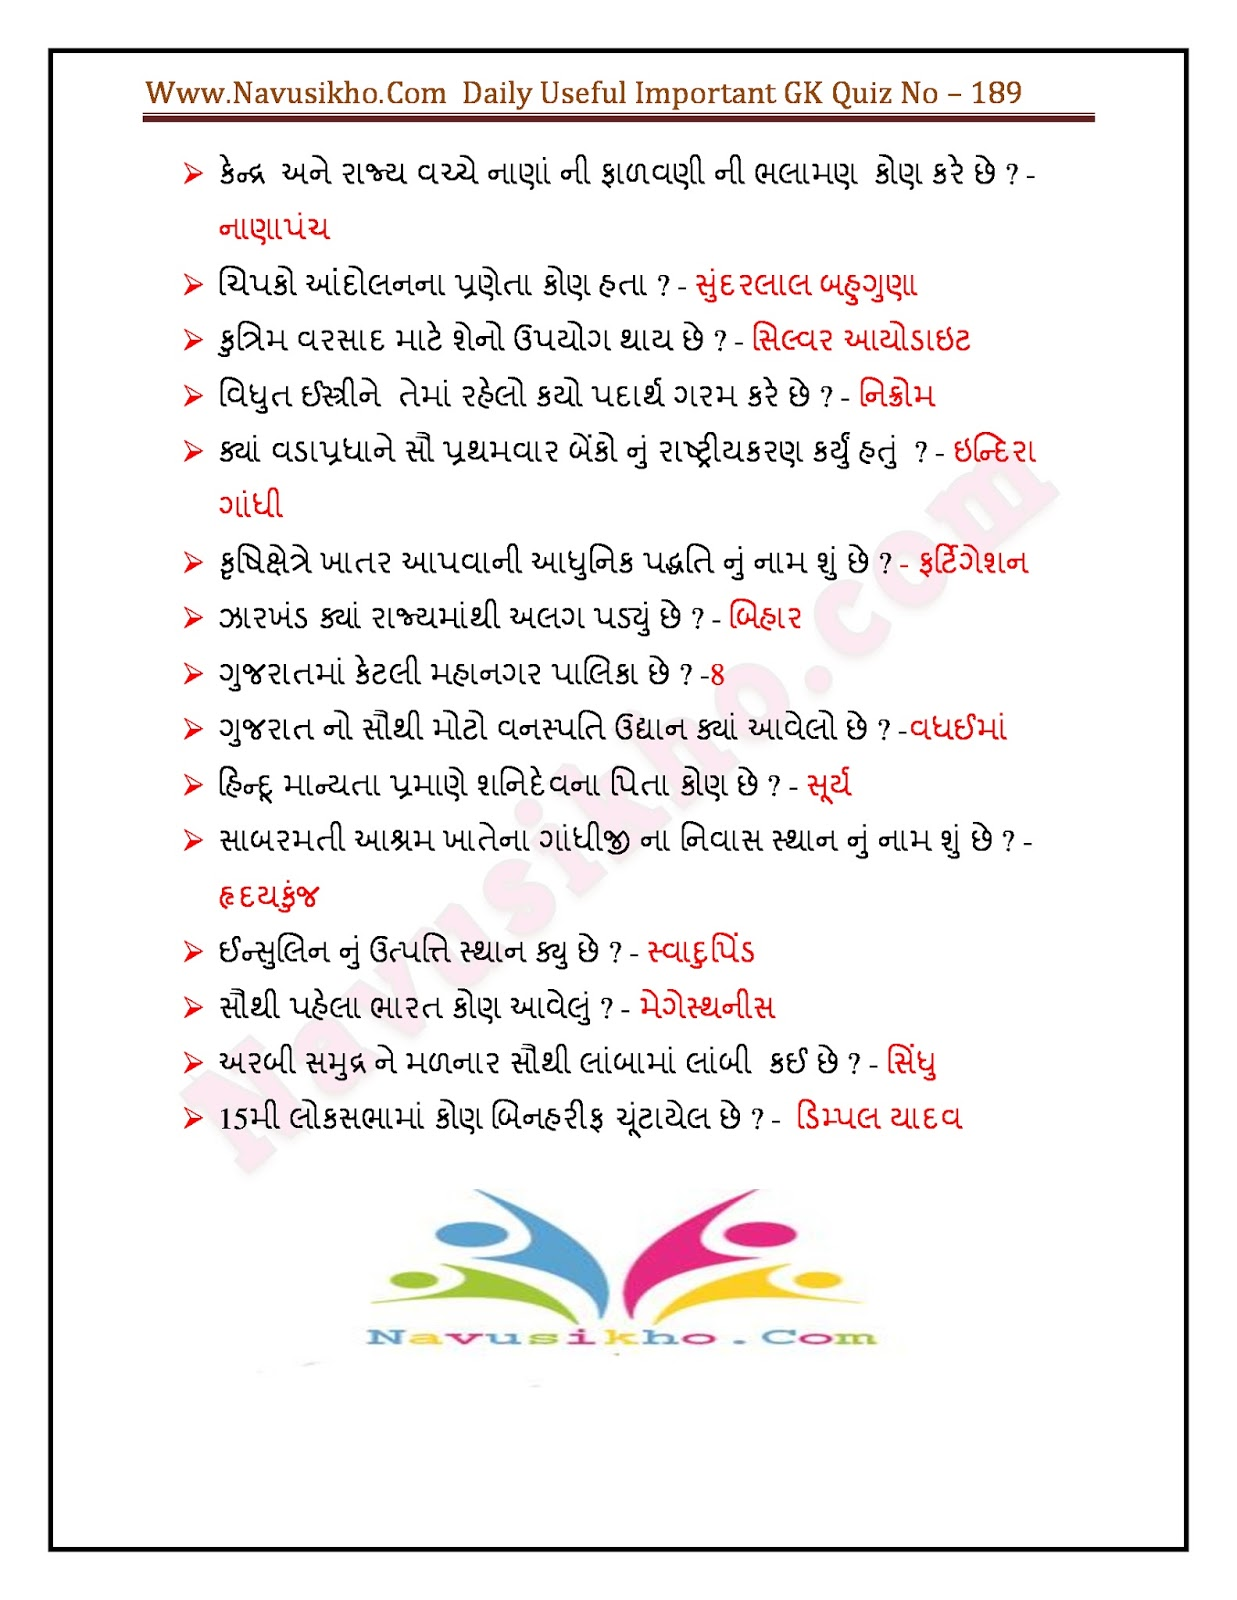 Daily useful Important Gk Question (Images ) Download Now 189 |